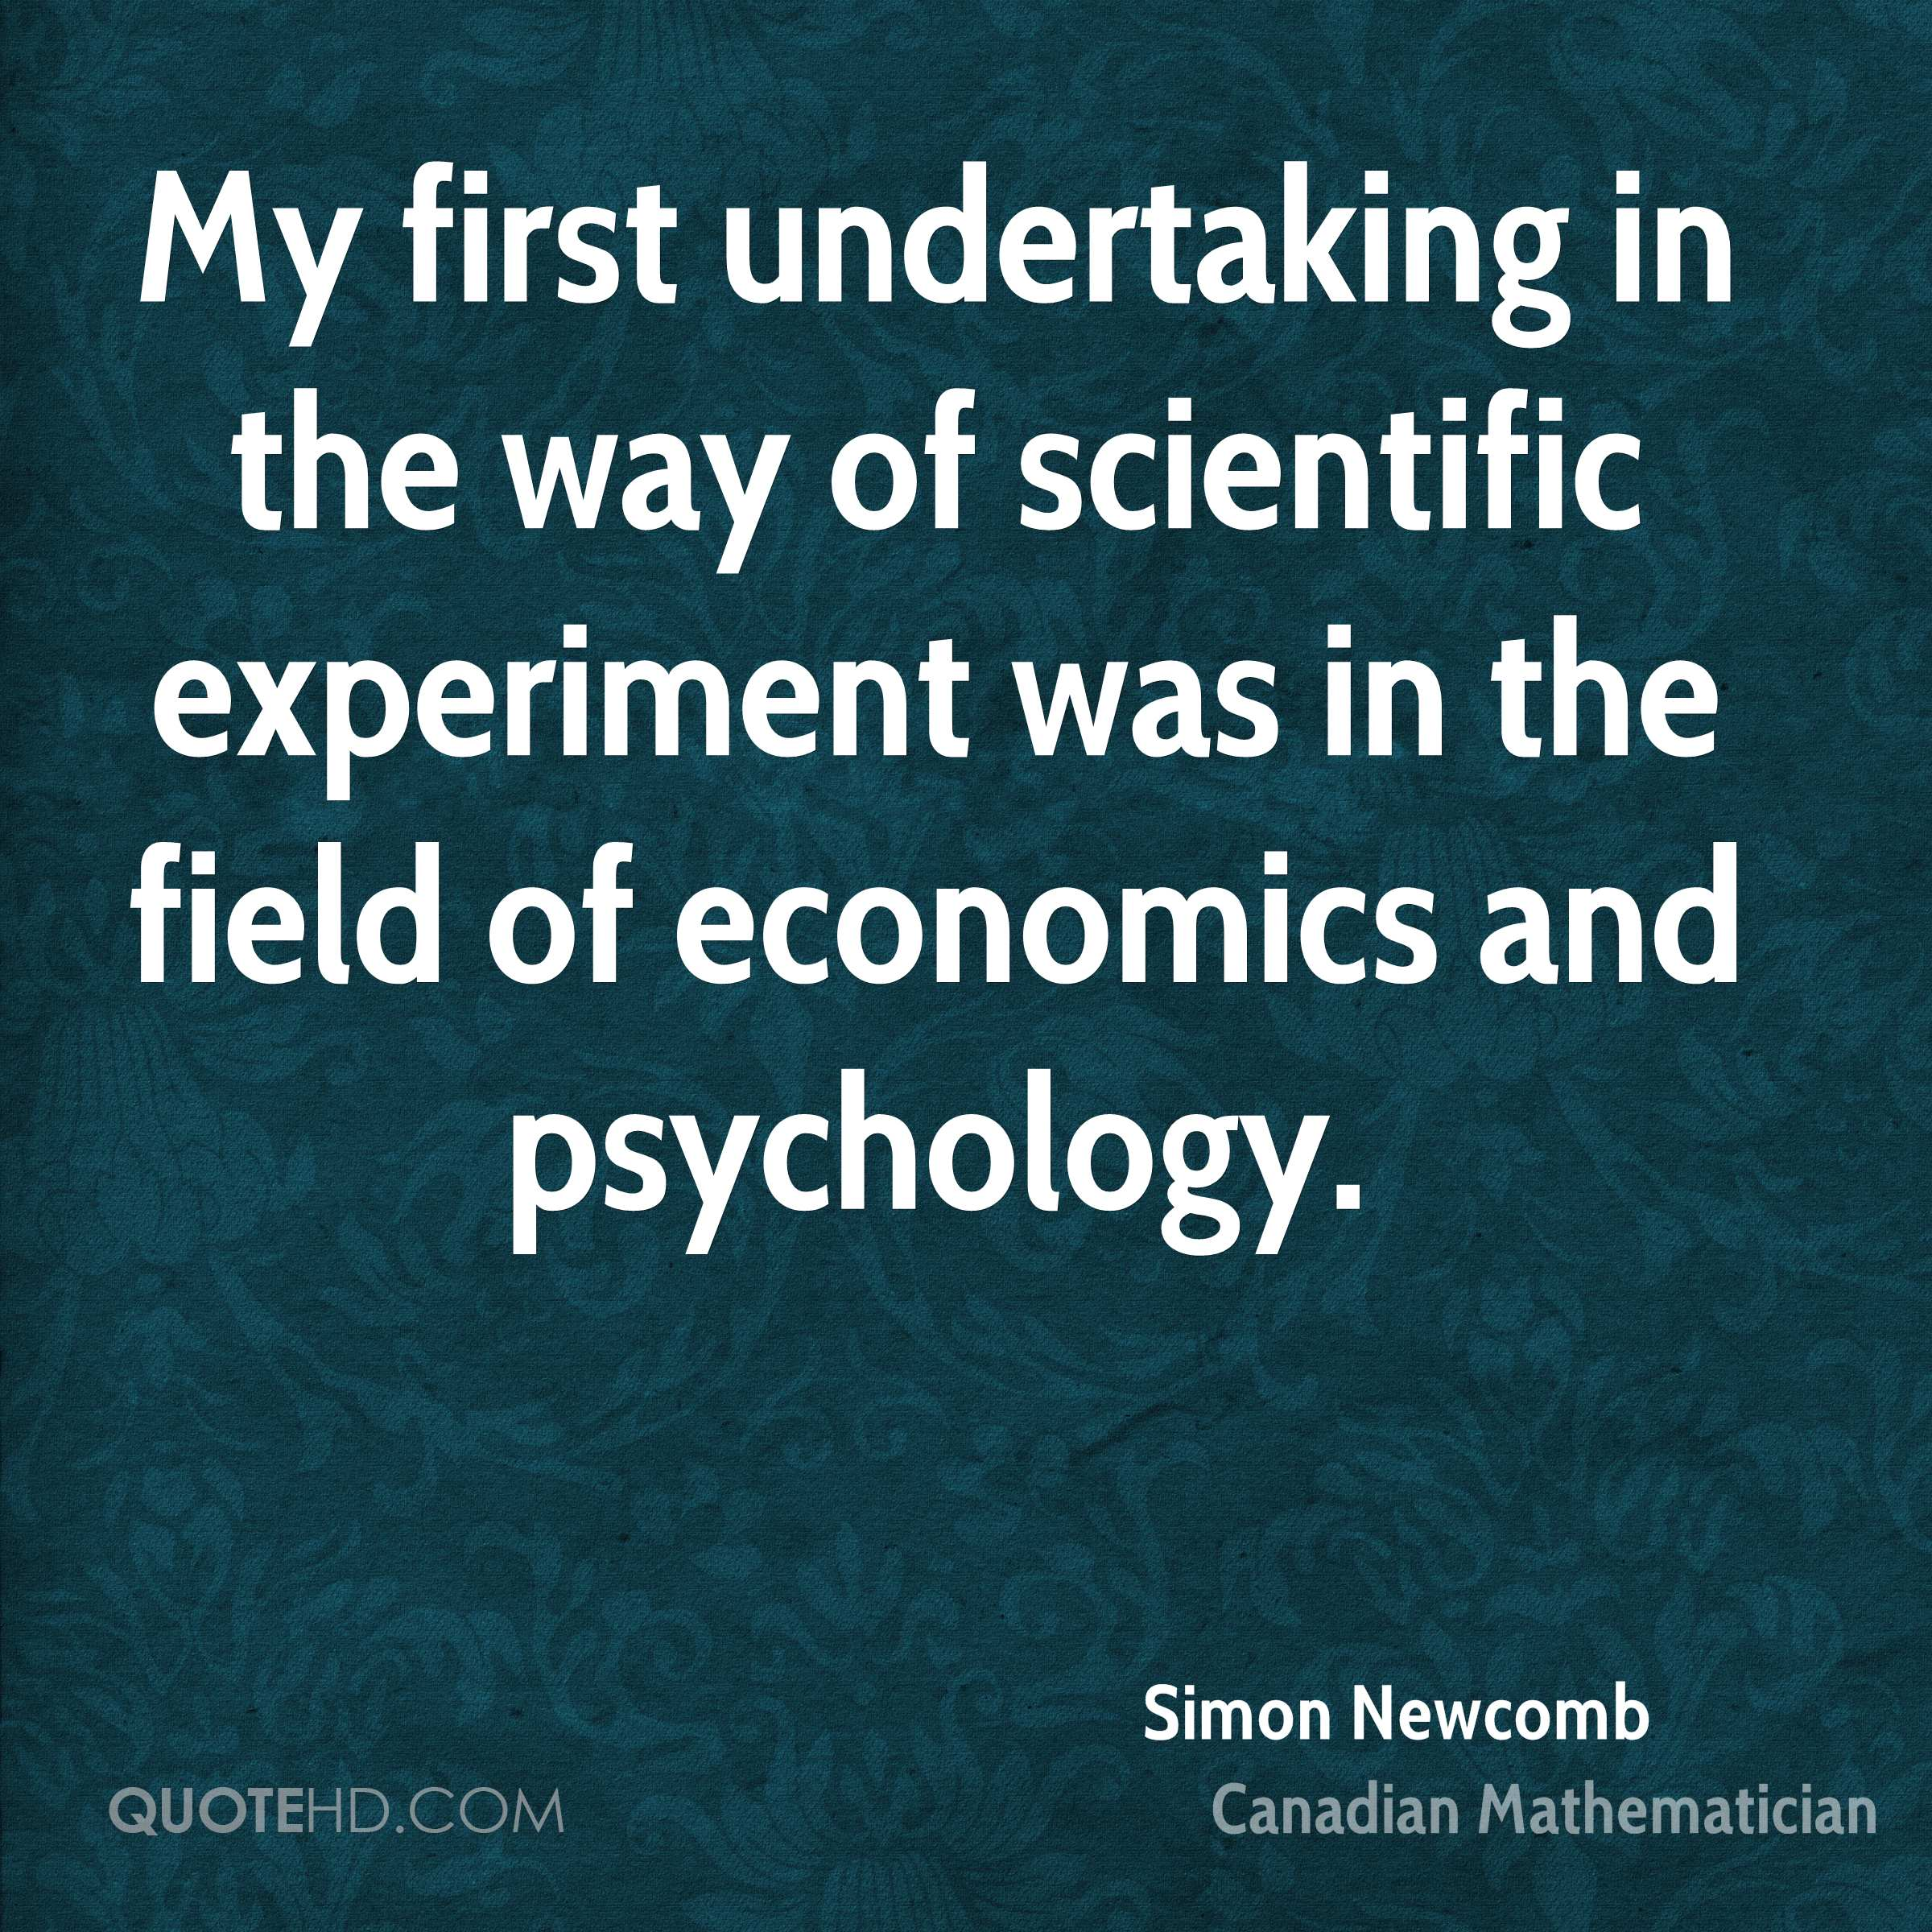 My first undertaking in the way of scientific experiment was in the field of economics and psychology.